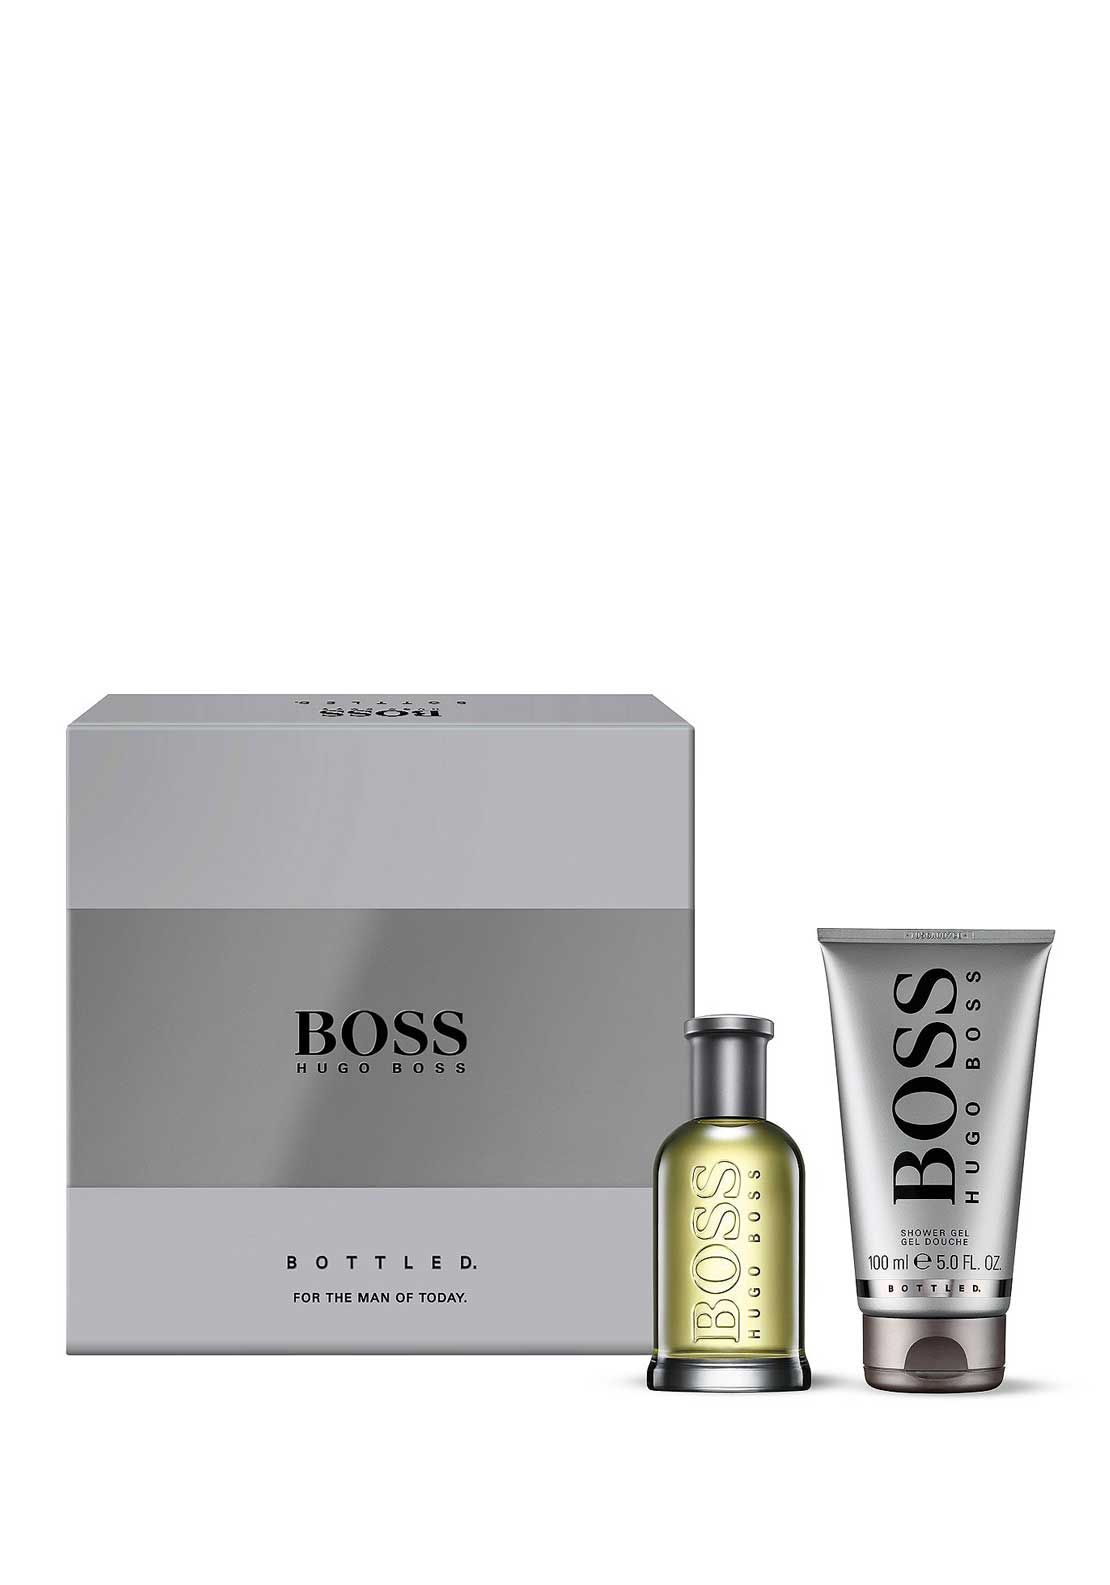 Hugo Boss Boss Bottled Eau de Toilette Gift Set, 50ml